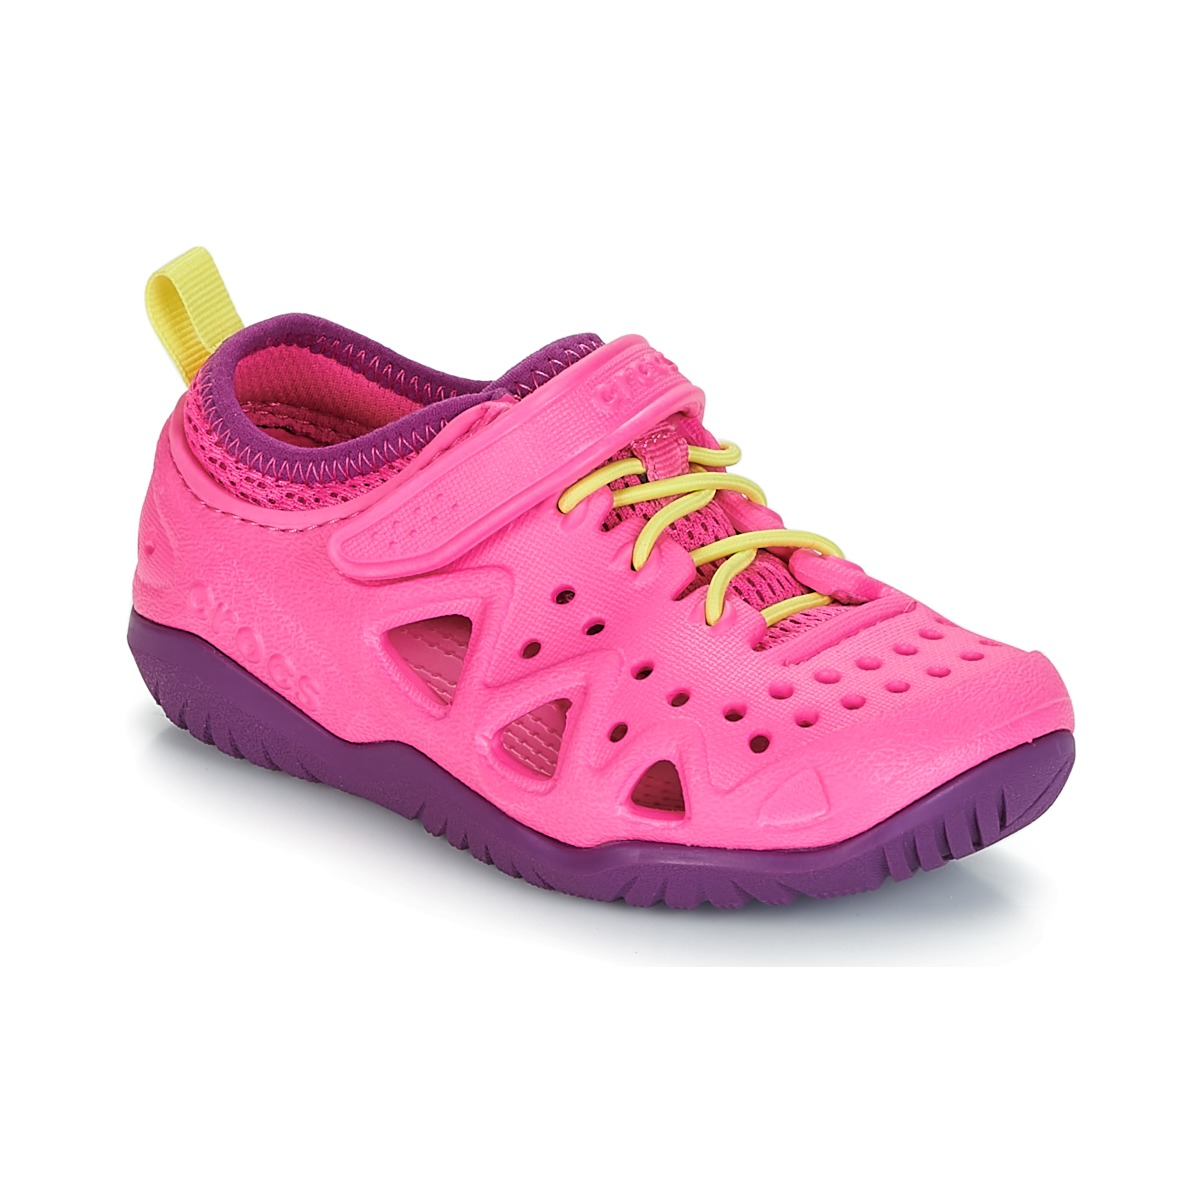 Crocs Swiftwater Play Shoes Water